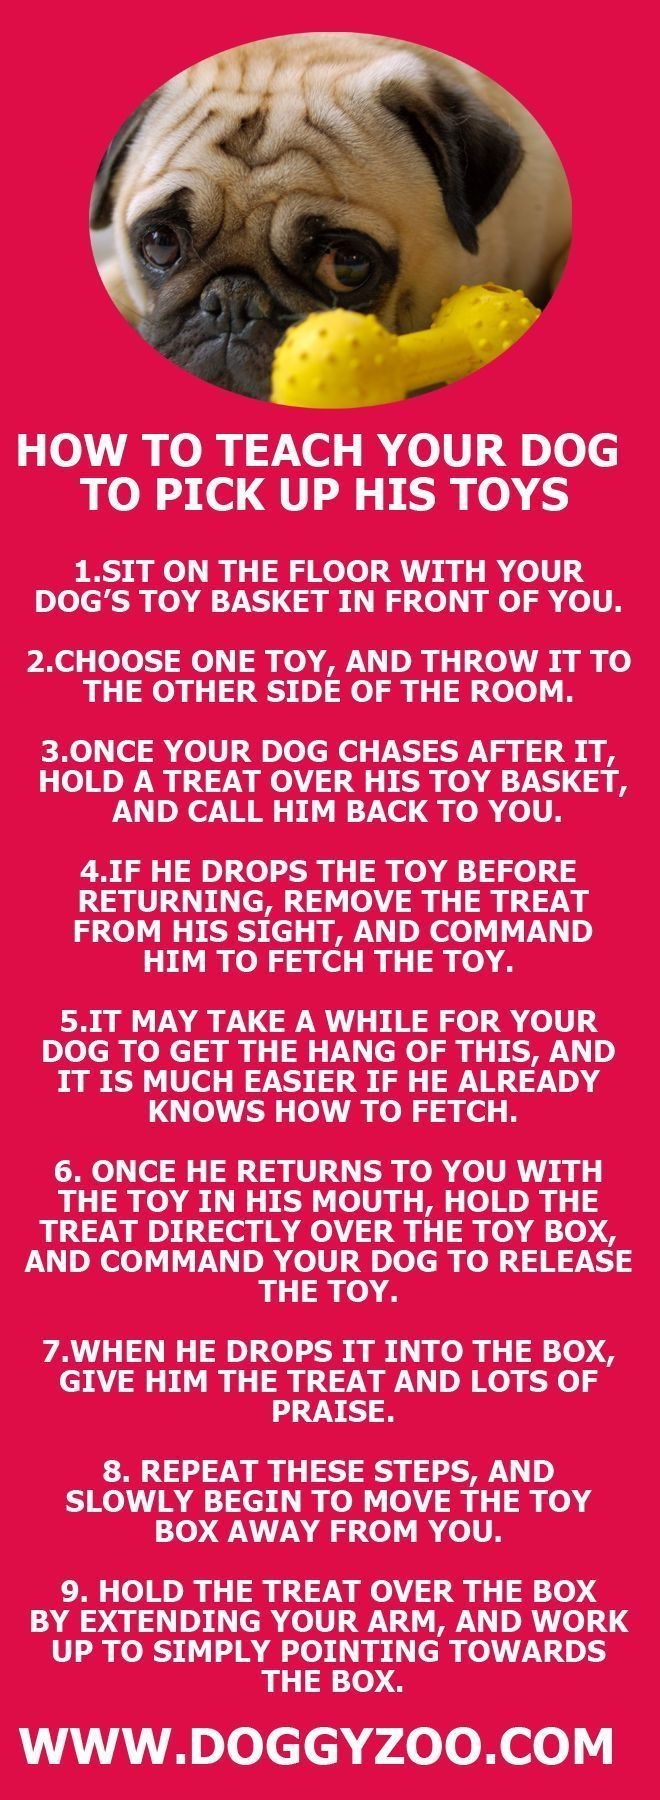 How to teach your dog to pick up his toys   Pug Puppies